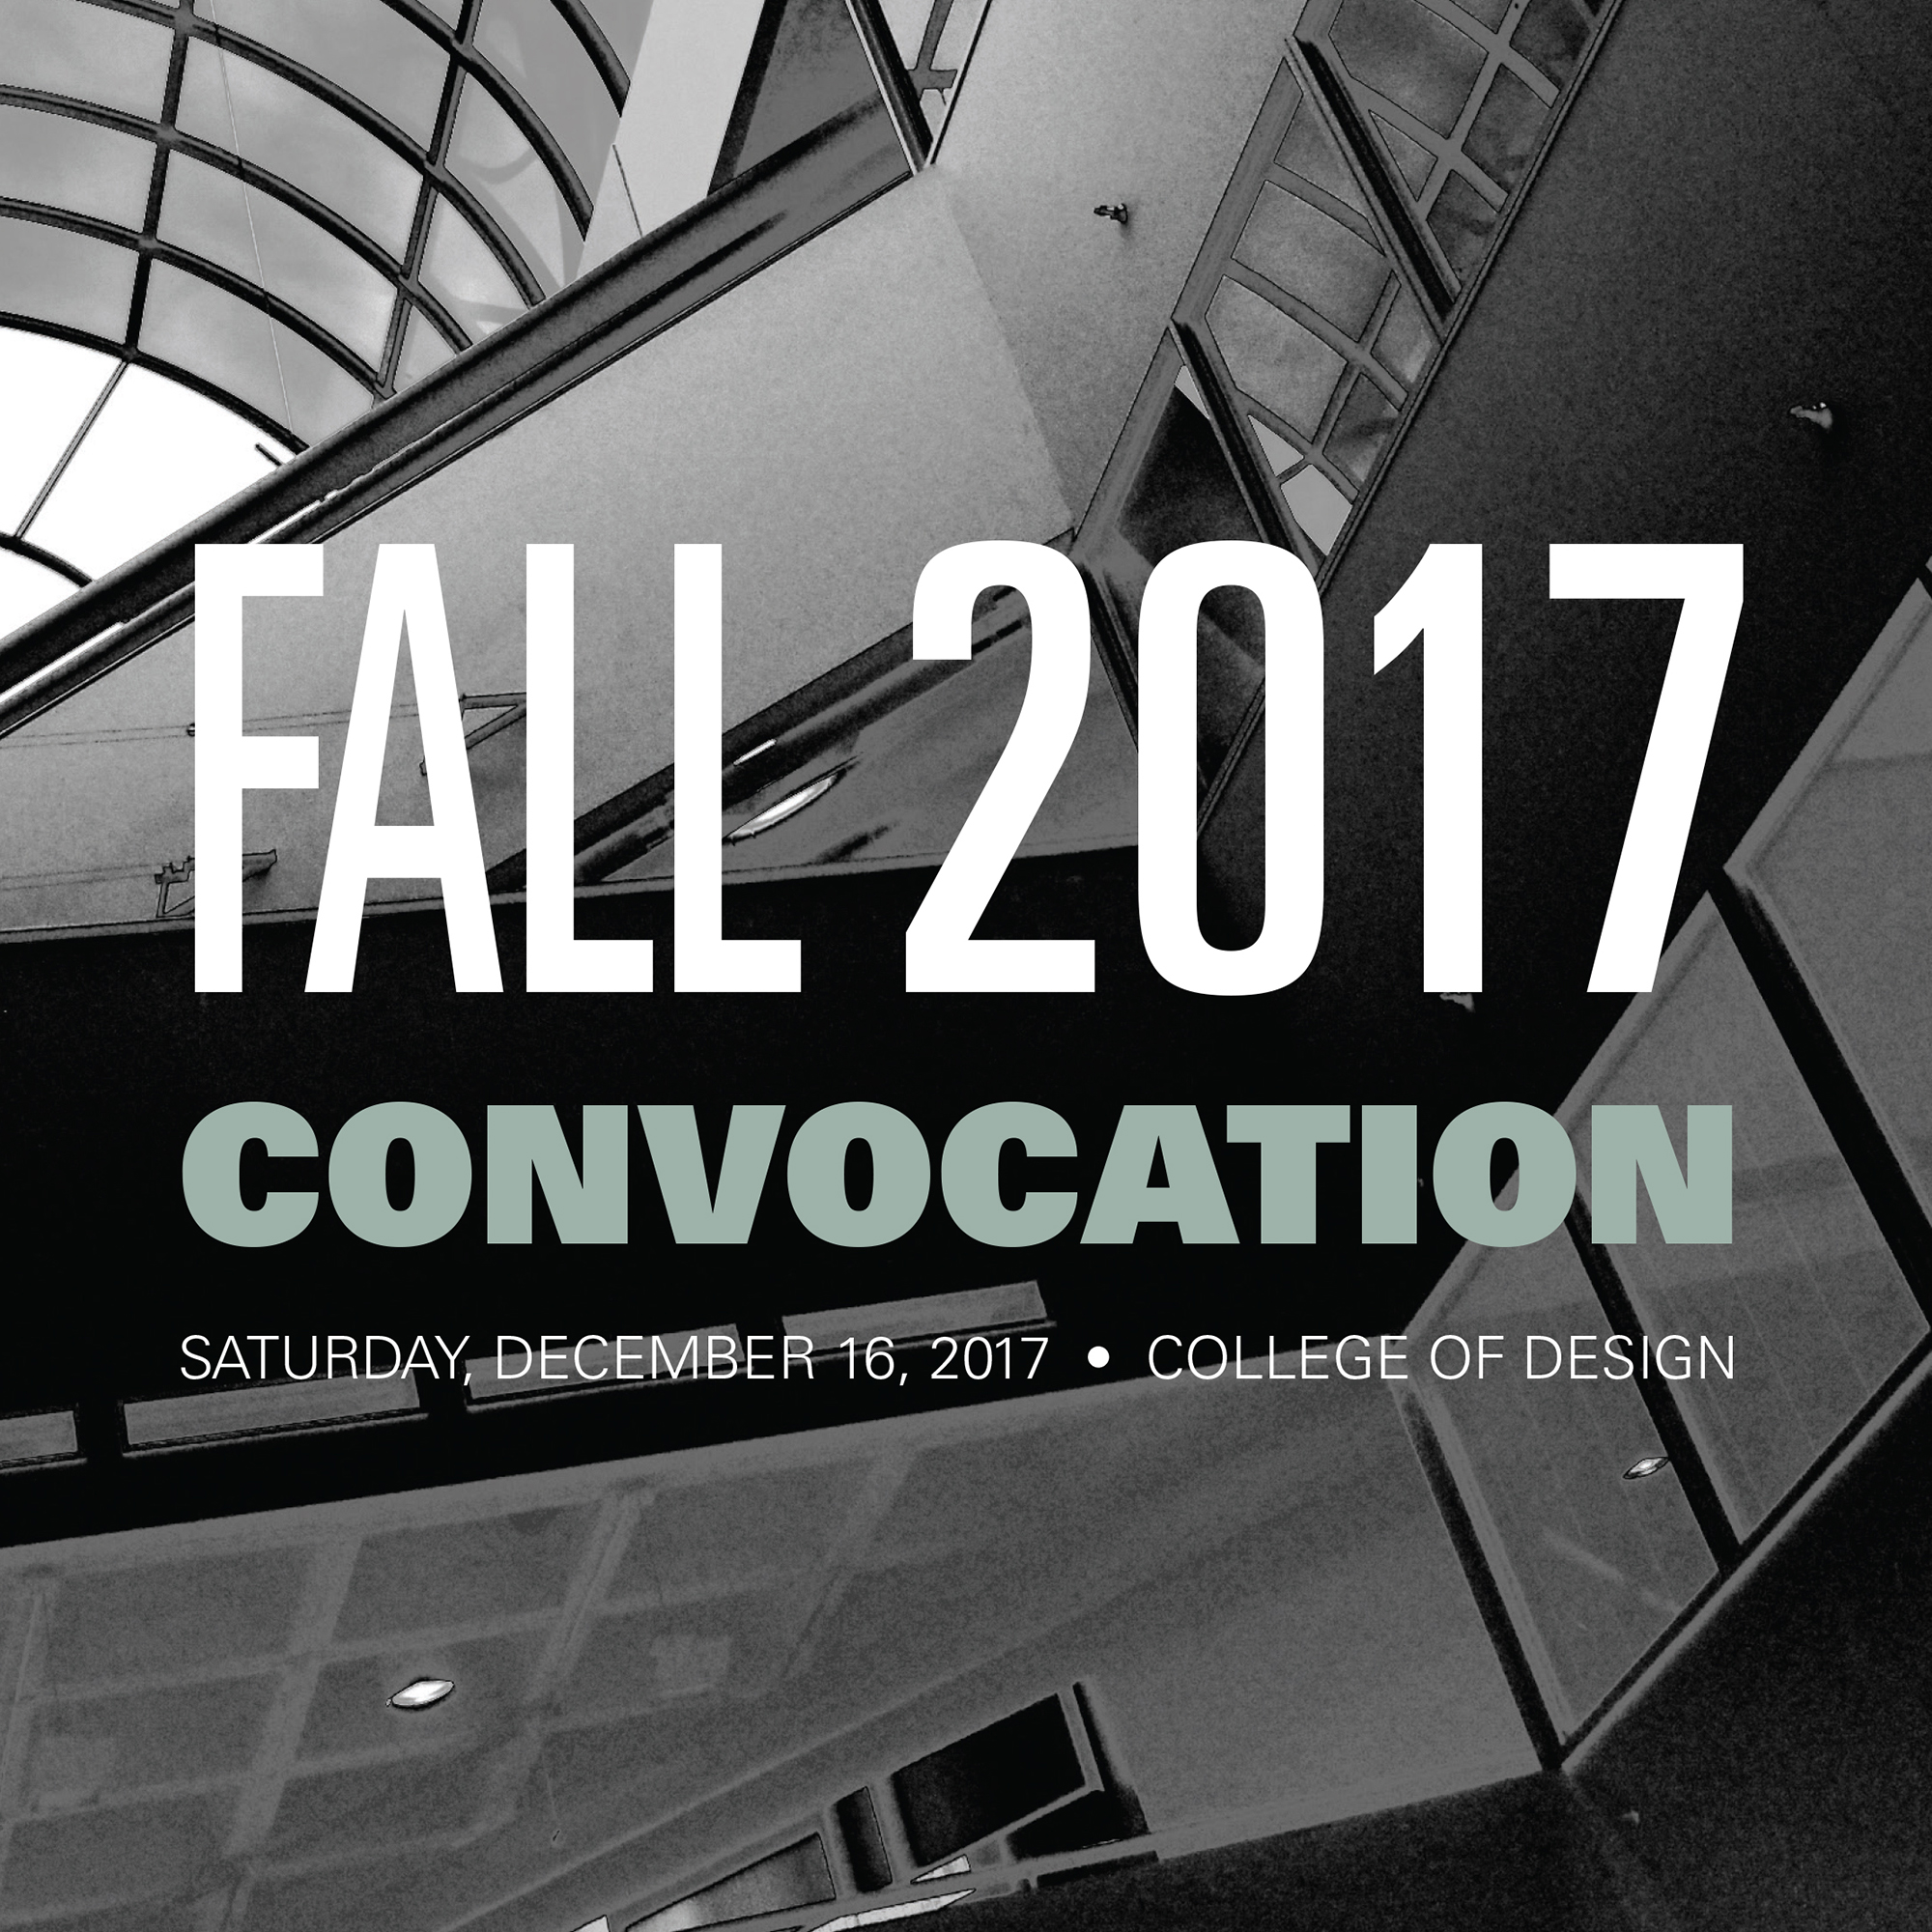 Fall 2017 Convocation